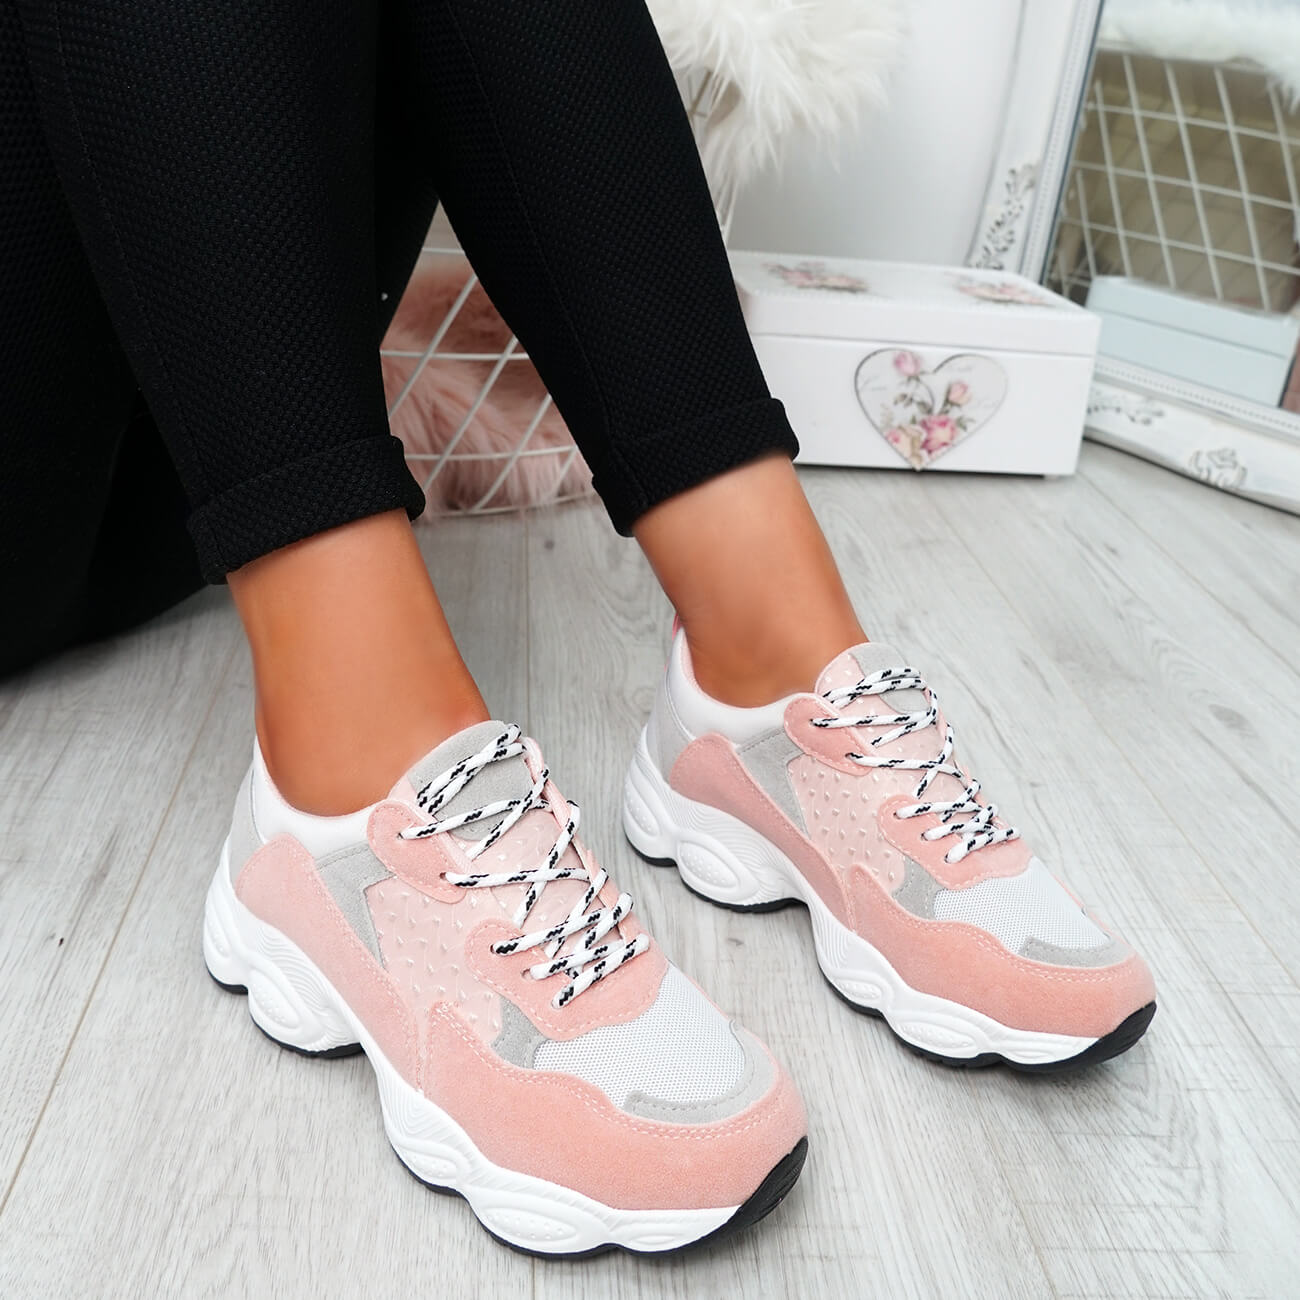 WOMENS-LADIES-RUNNING-GYM-CHUNKY-TRAINERS-SNEAKERS-SHOES-SIZE miniatura 18